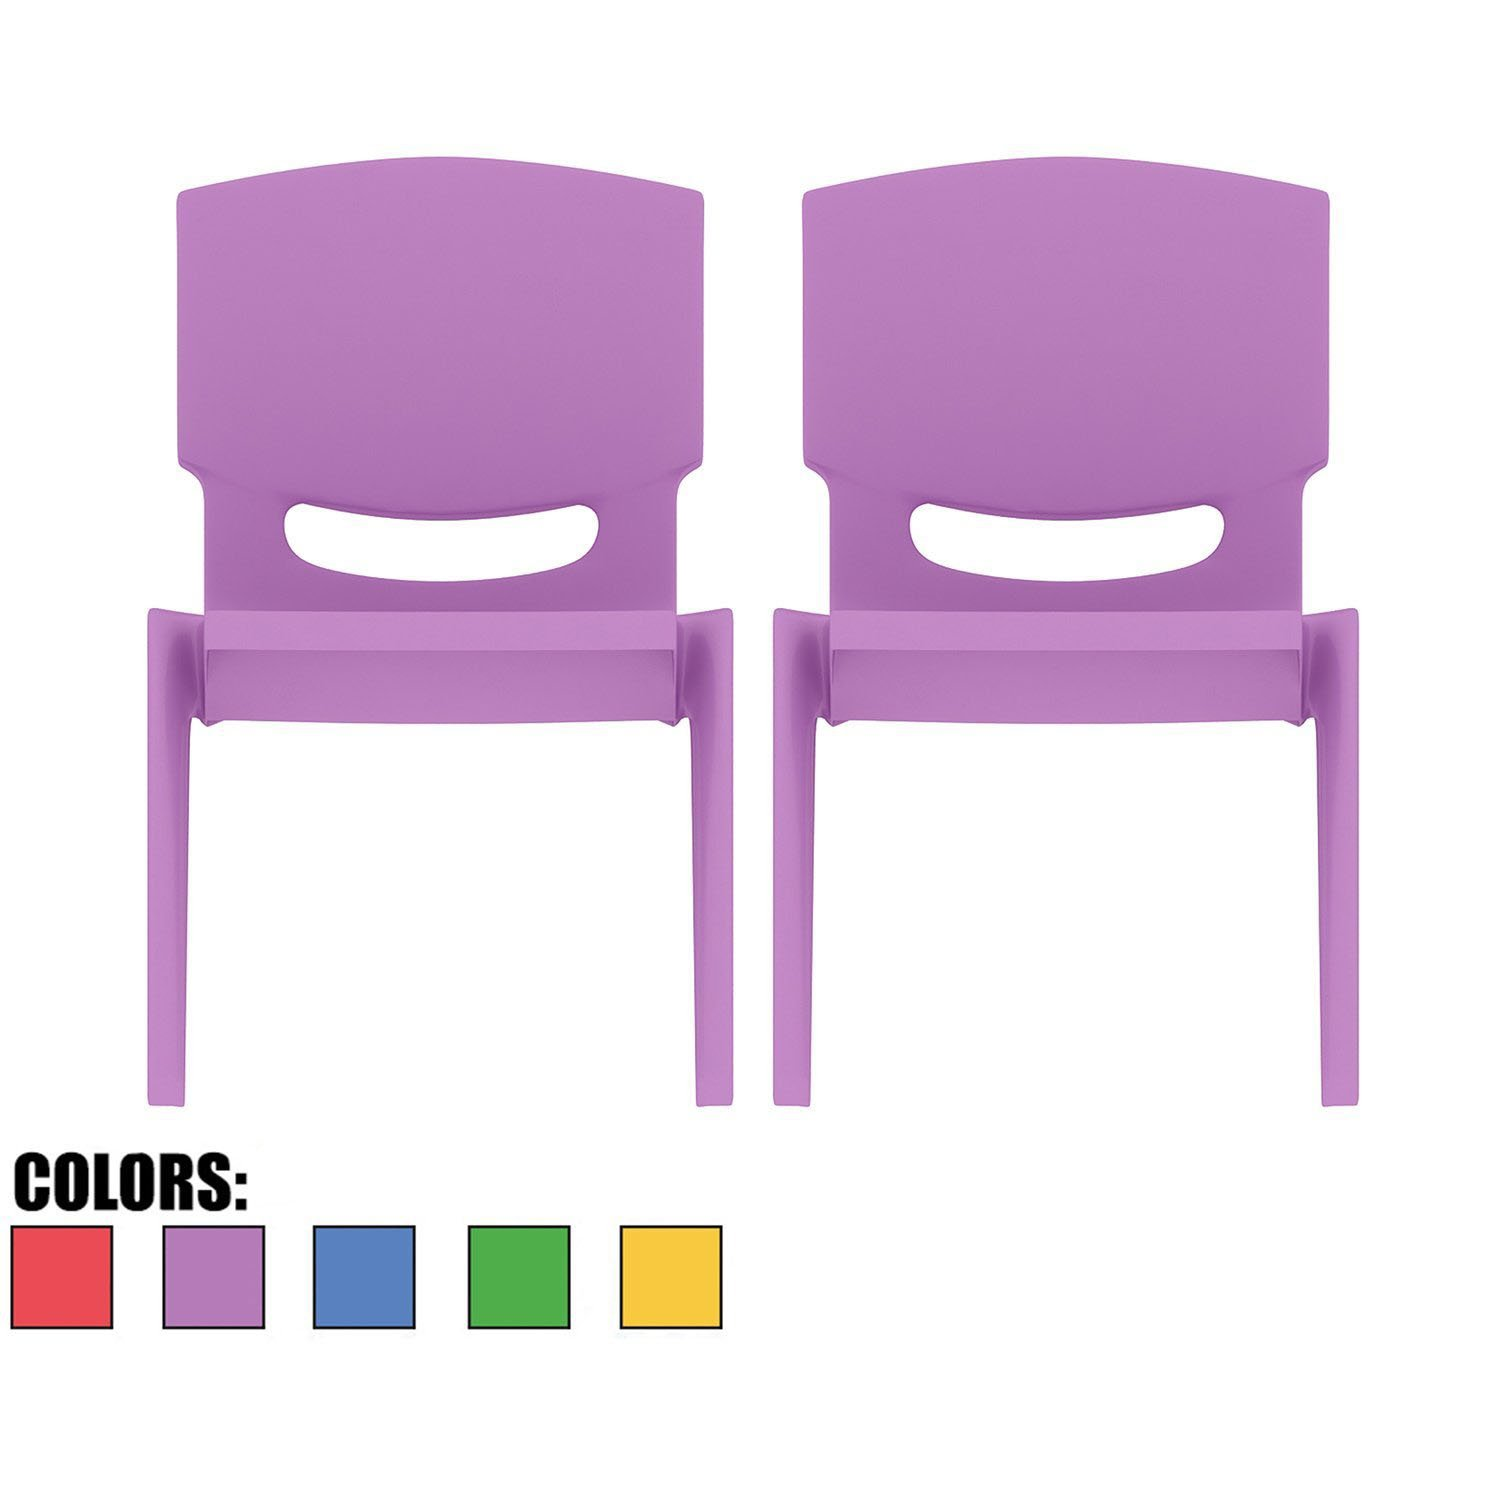 2xhome - Set of Two (2) - Purple - Kids Size Plastic Side Chair 10'' Seat Height Purple Childs Chair Childrens Room School Chairs No Arm Arms Armless Molded Plastic Seat Stackable